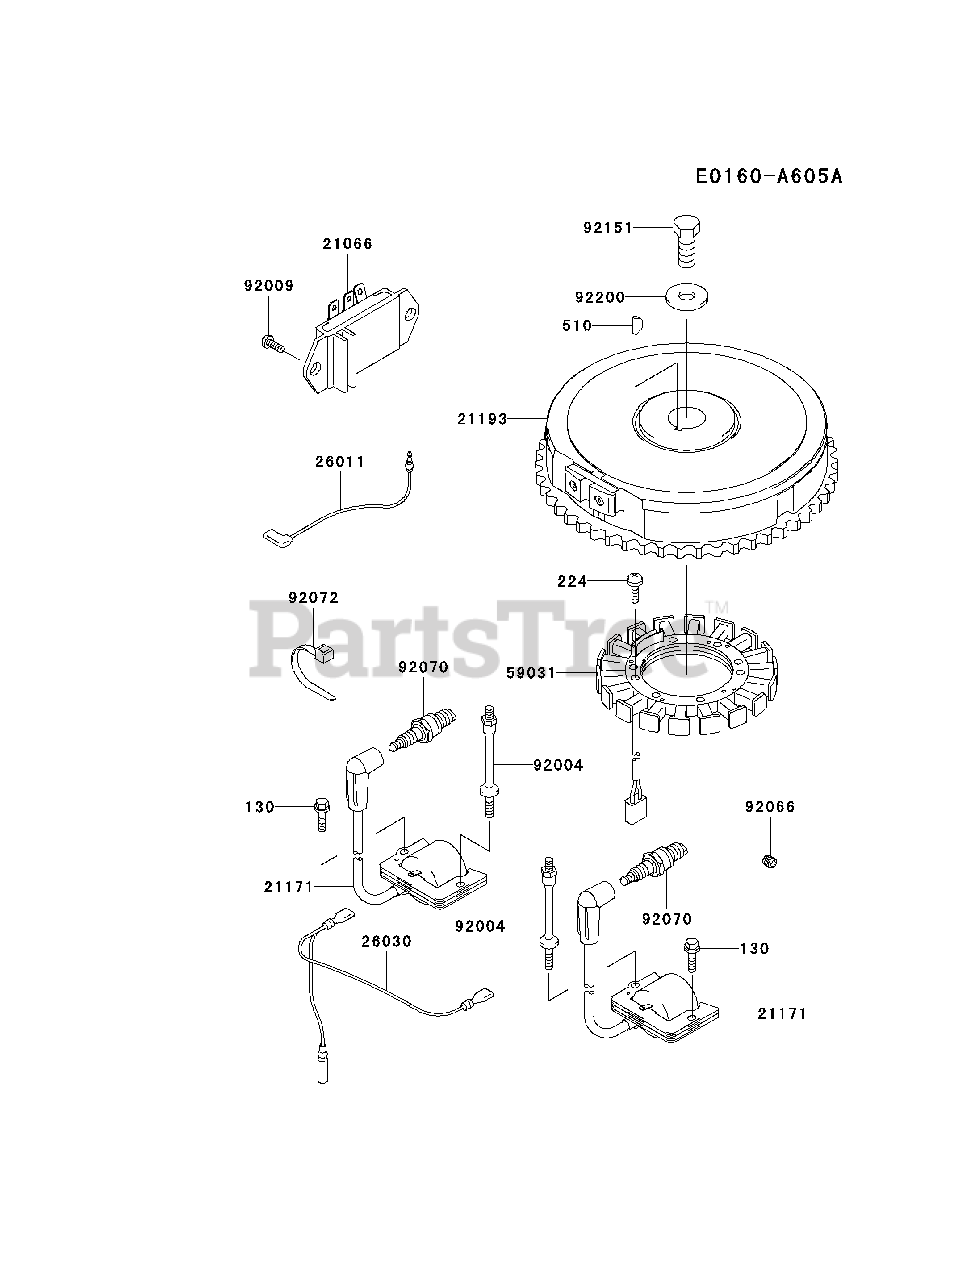 Kawasaki Parts on the ELECTRIC-EQUIPMENT Diagram for